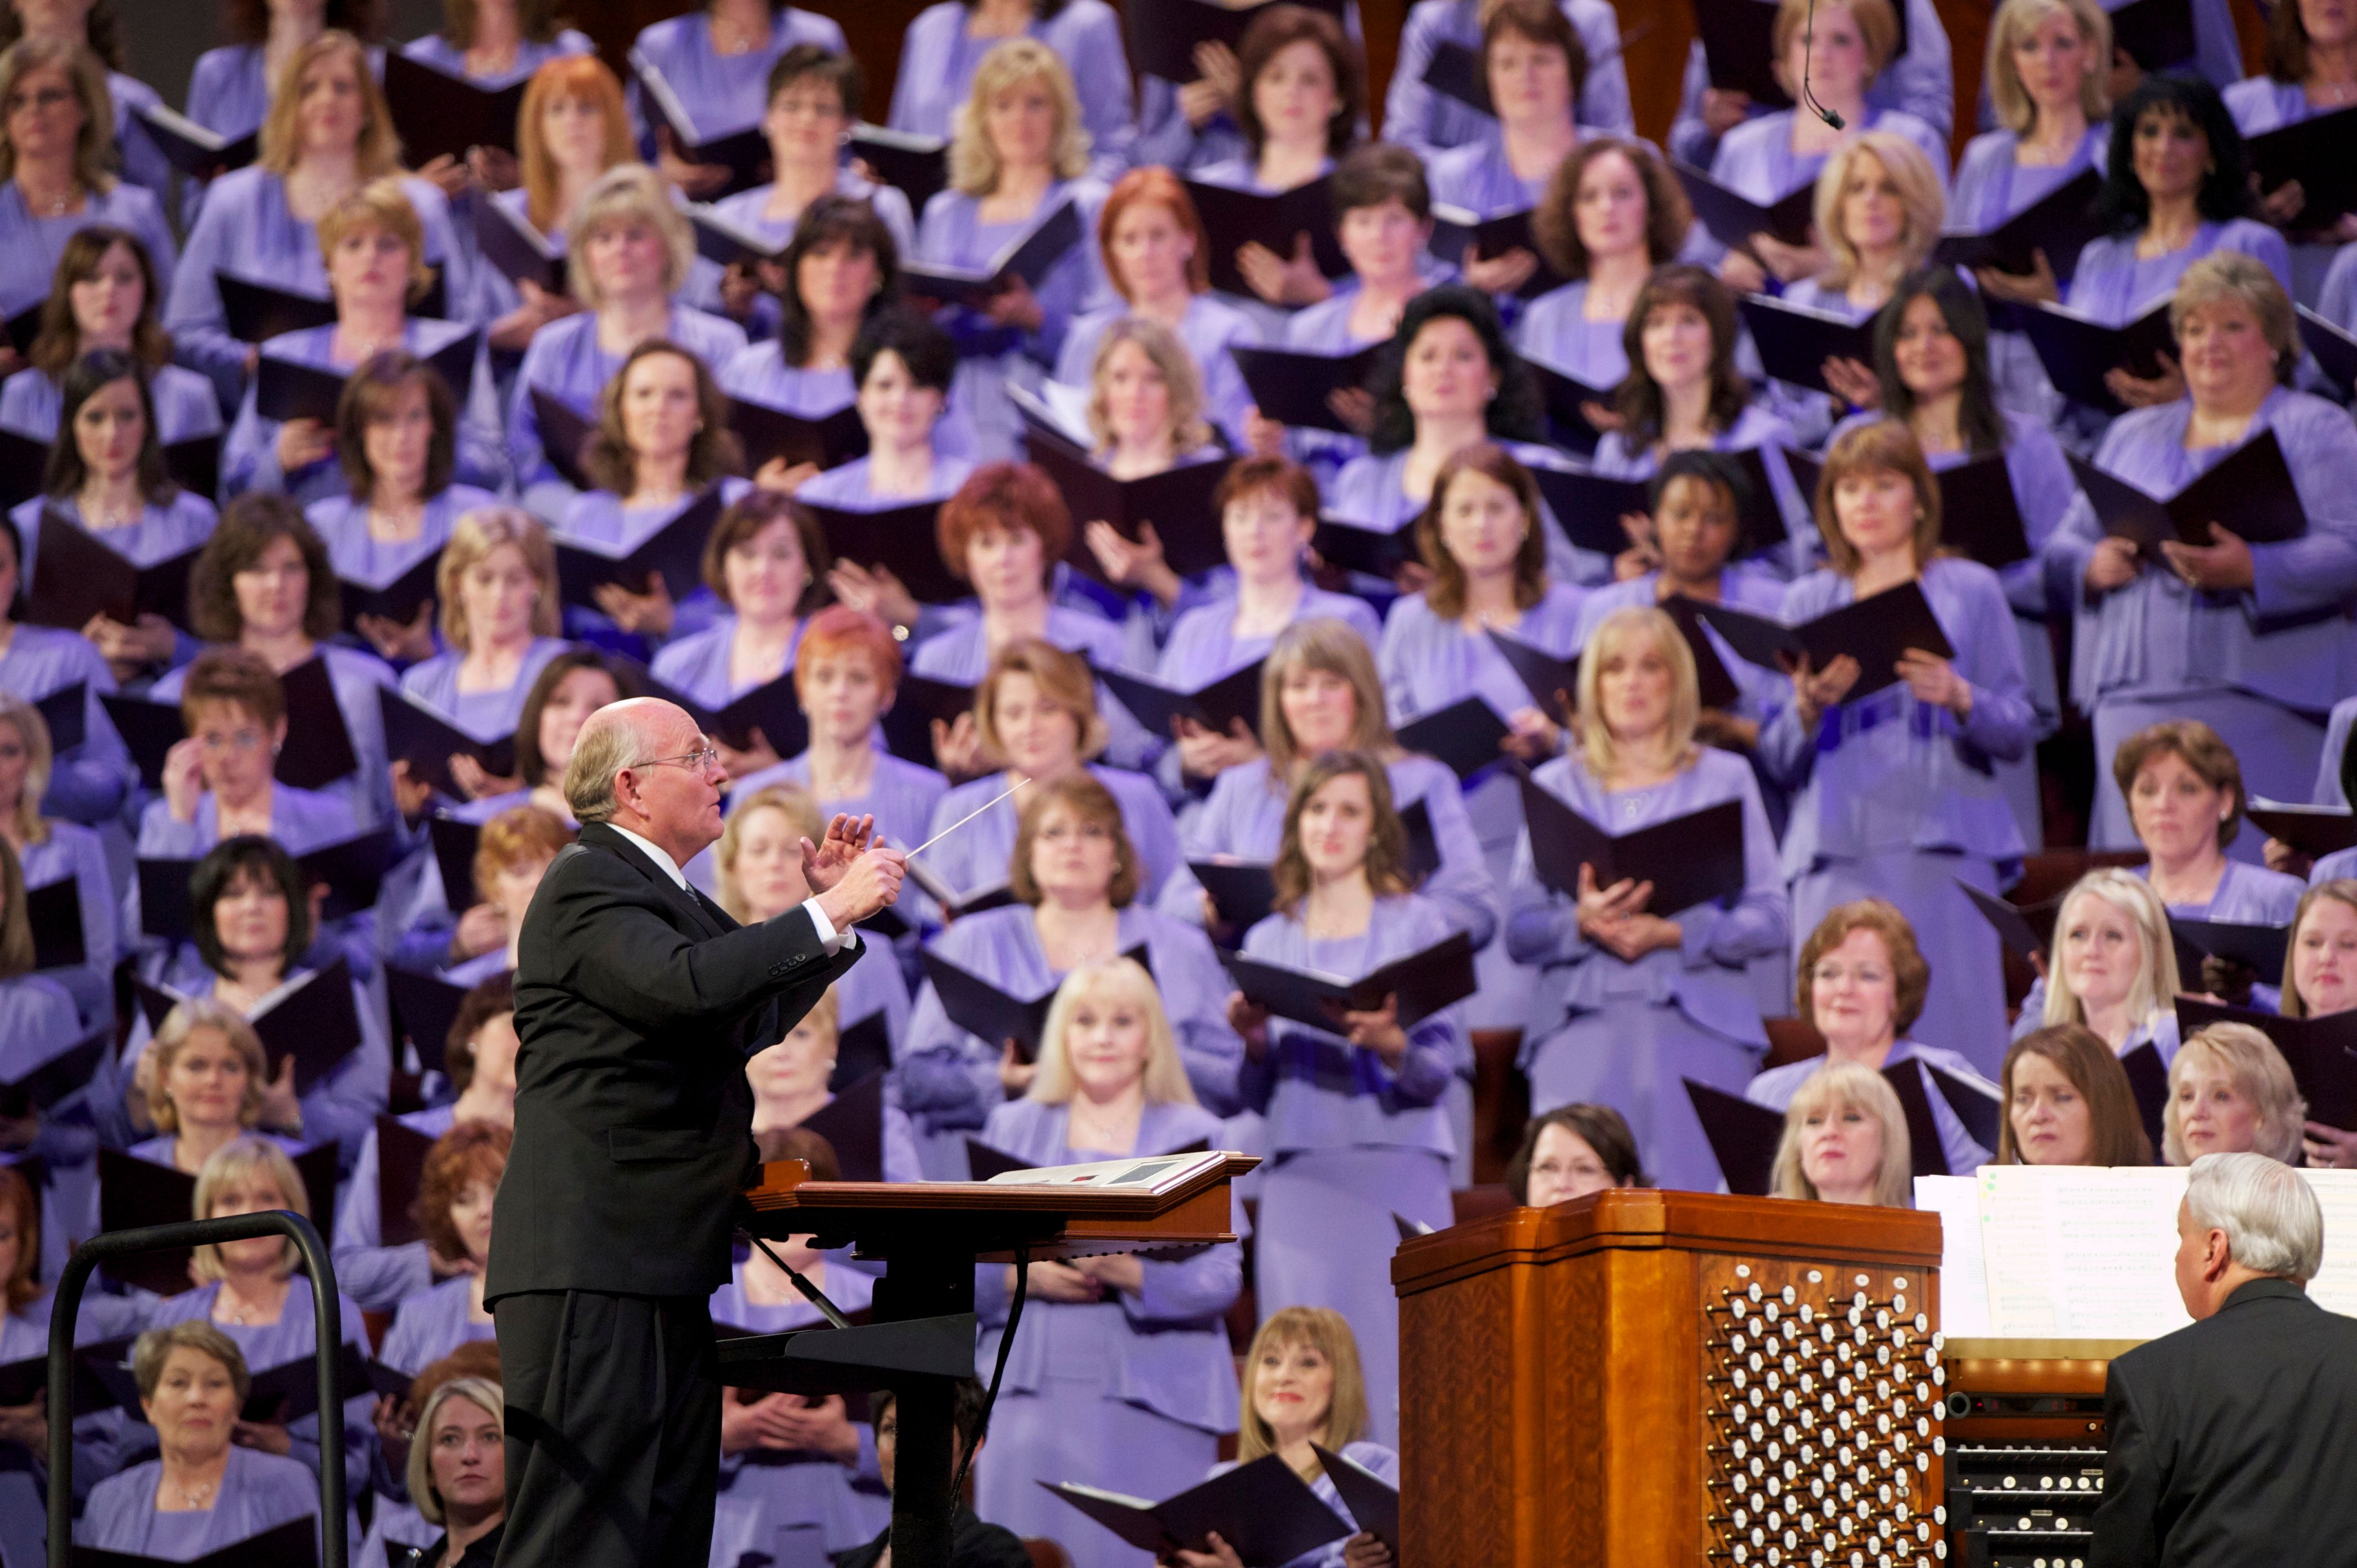 The Mormon Tabernacle Choir conductor leads the choir during general conference.